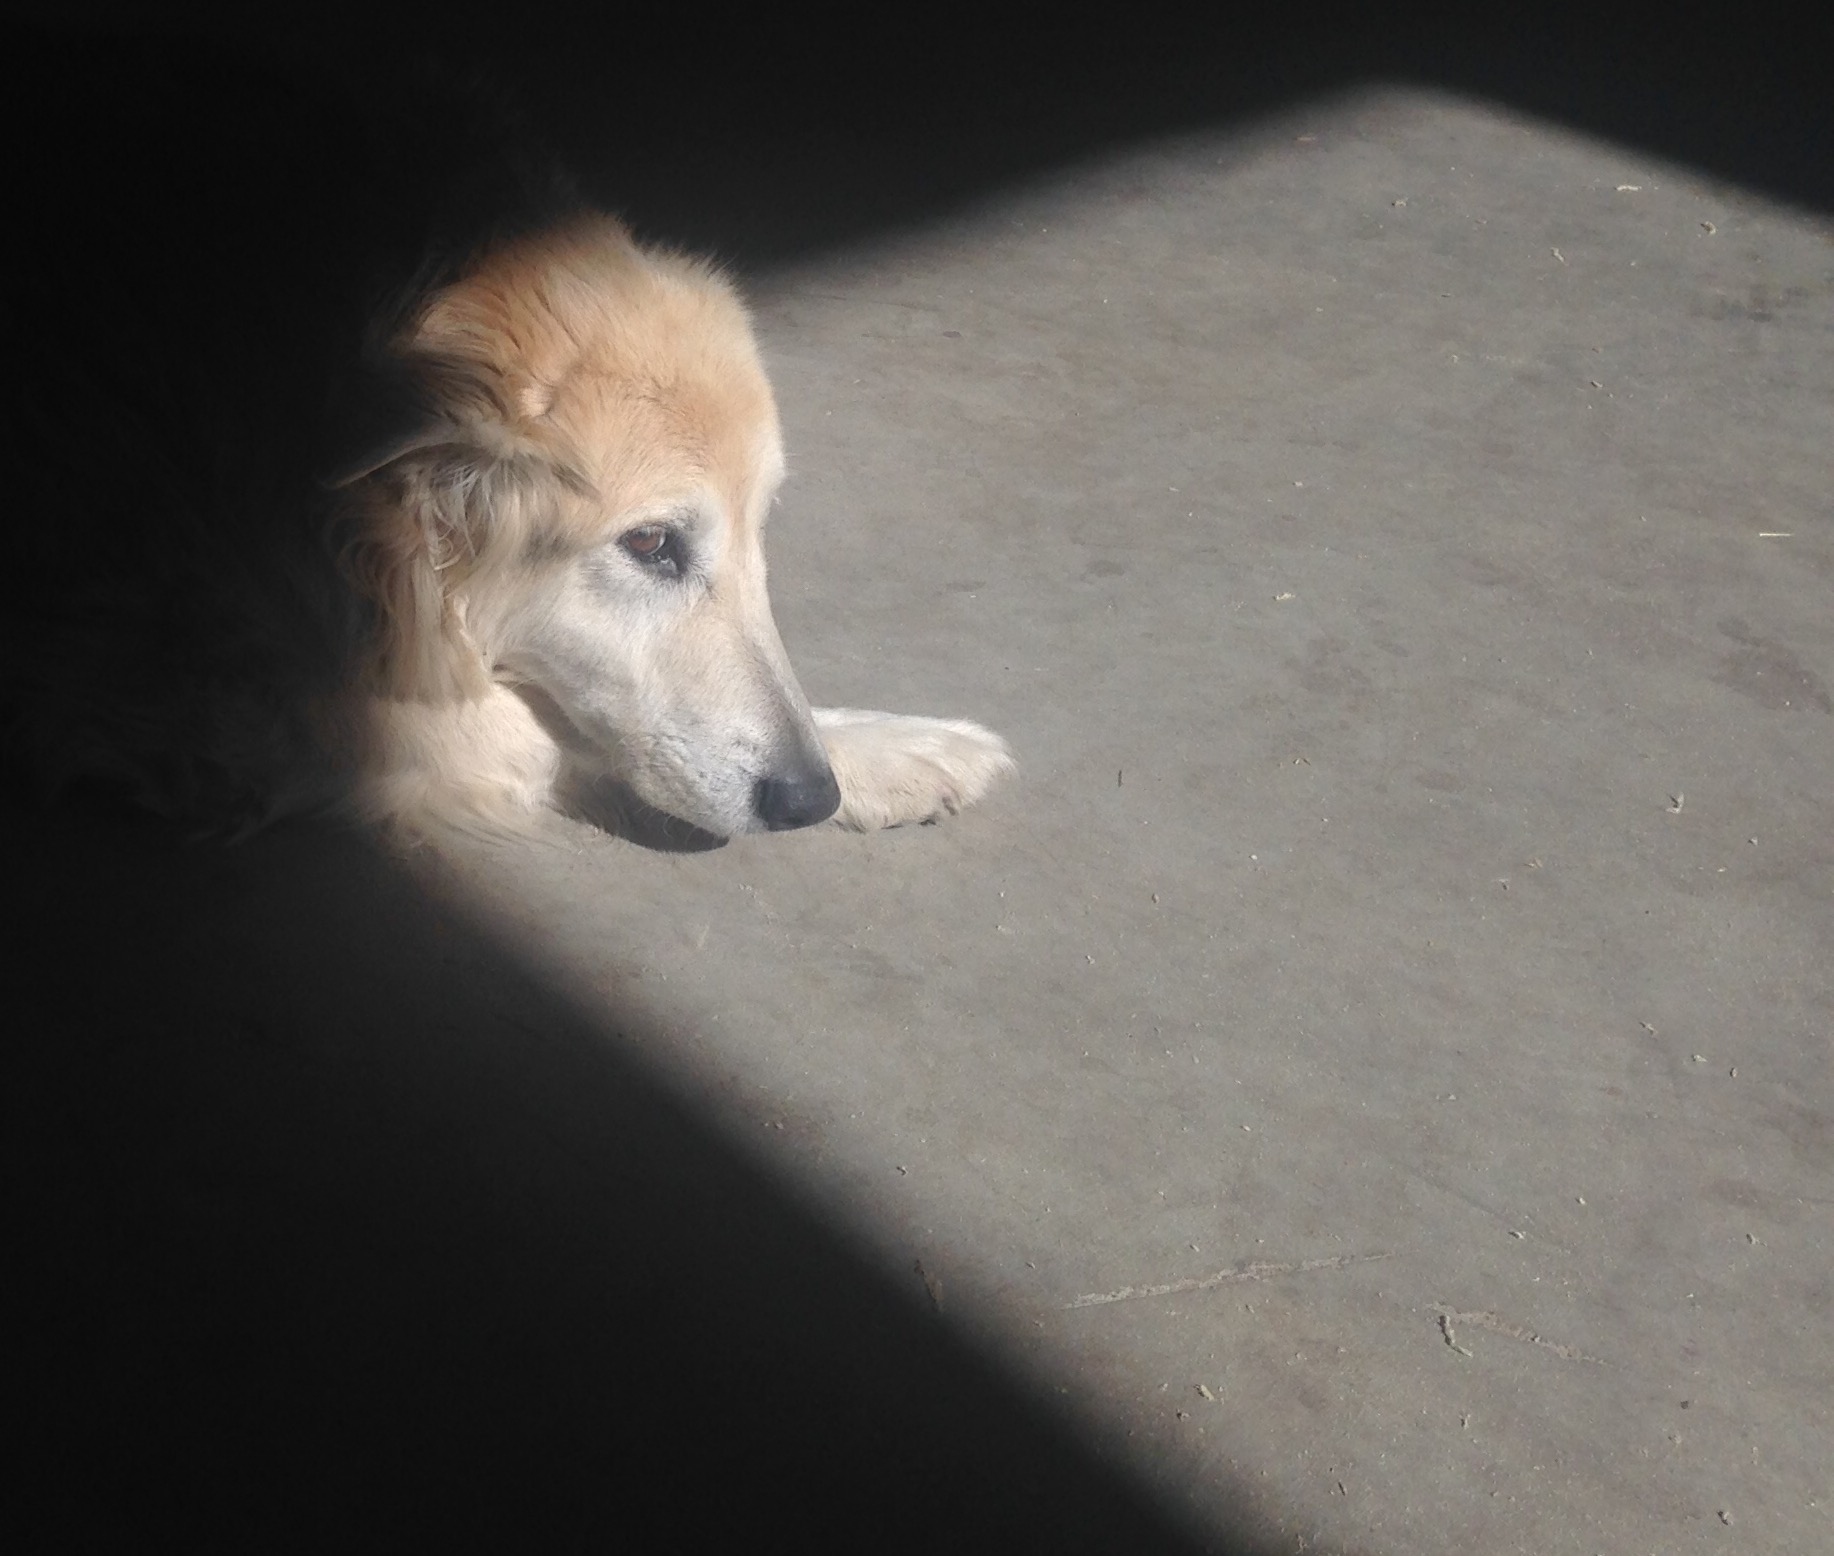 Zaydee sunning her face while laying on the studio floor (taken in autumn)